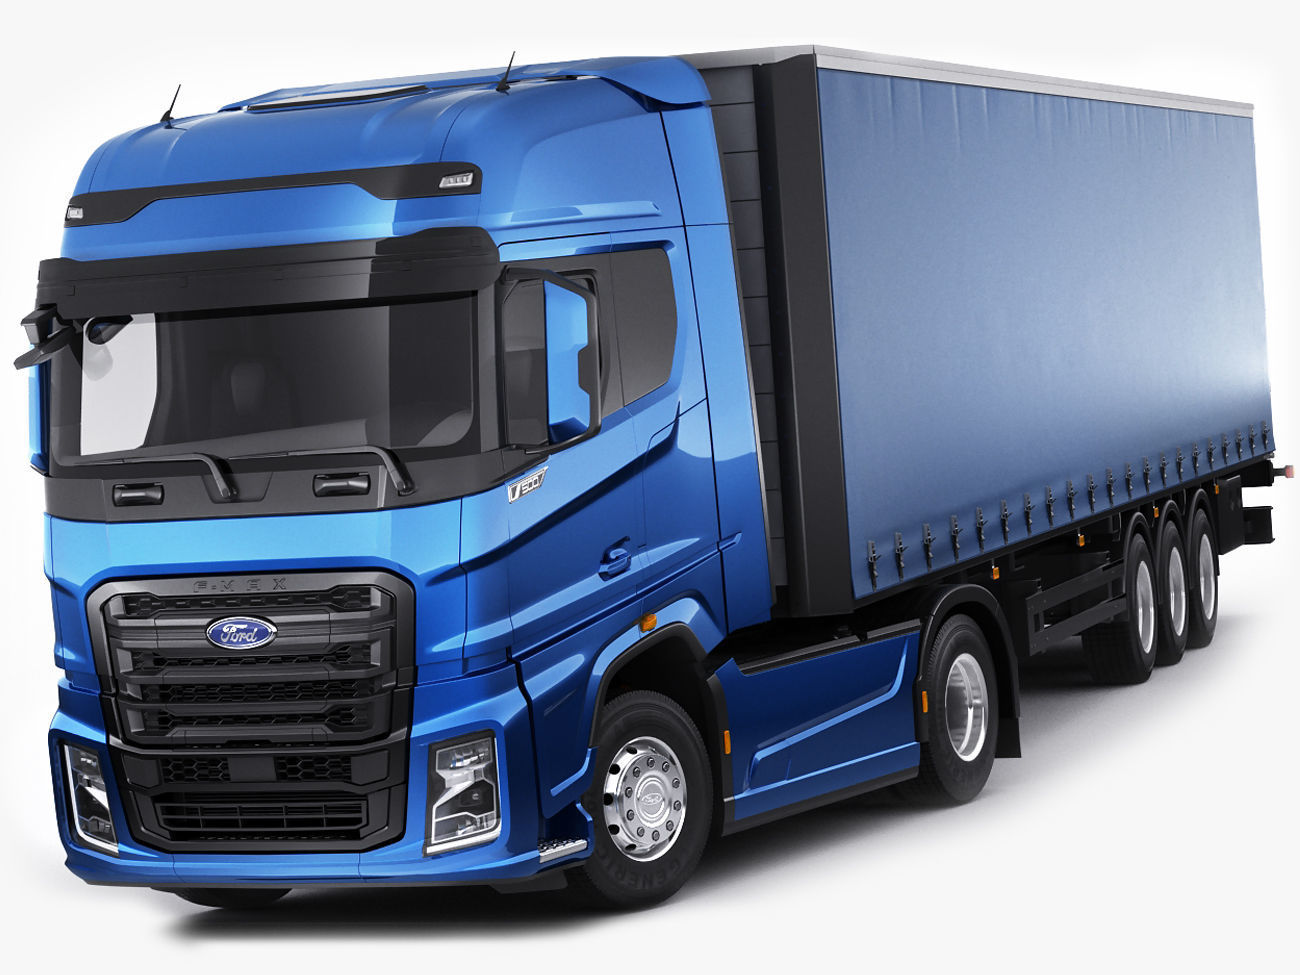 F-max 2019 truck with trailer